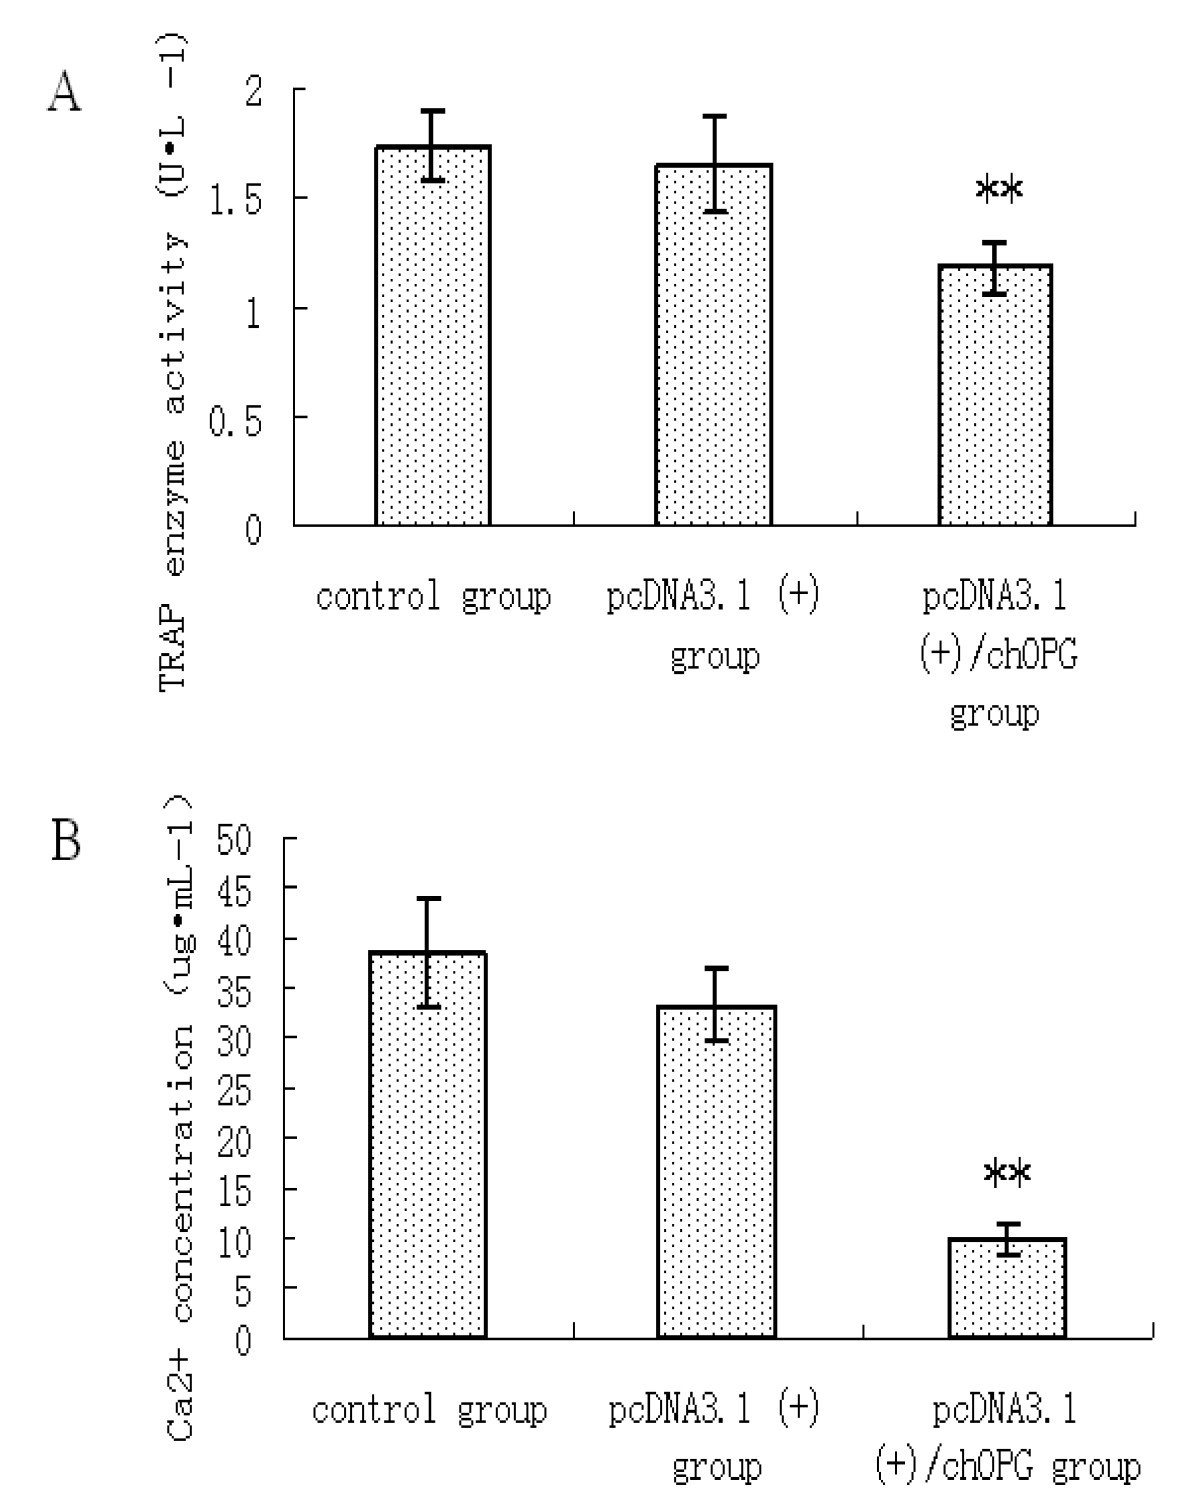 Effects of osteoprotegerin from transfection of pcDNA3 1(+